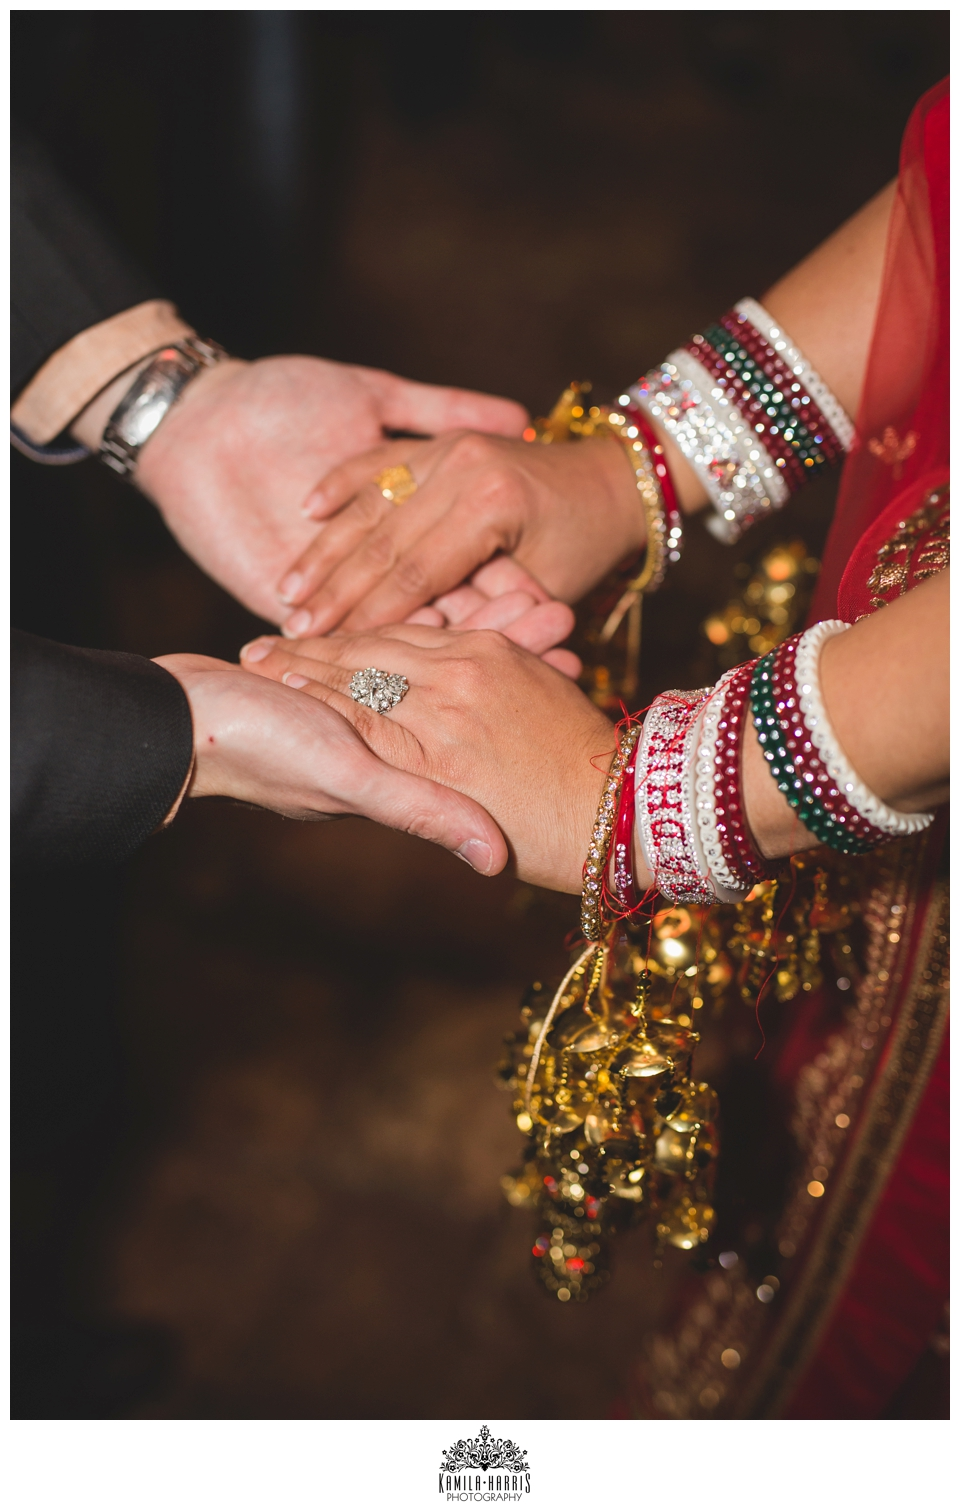 Punjabi wedding traidition, Chura, kaliras, welcome party, Refinery Rooftop, Empire State Building, Rooftop, Punjabi, Family gathering, event photographer, kamila harris photography